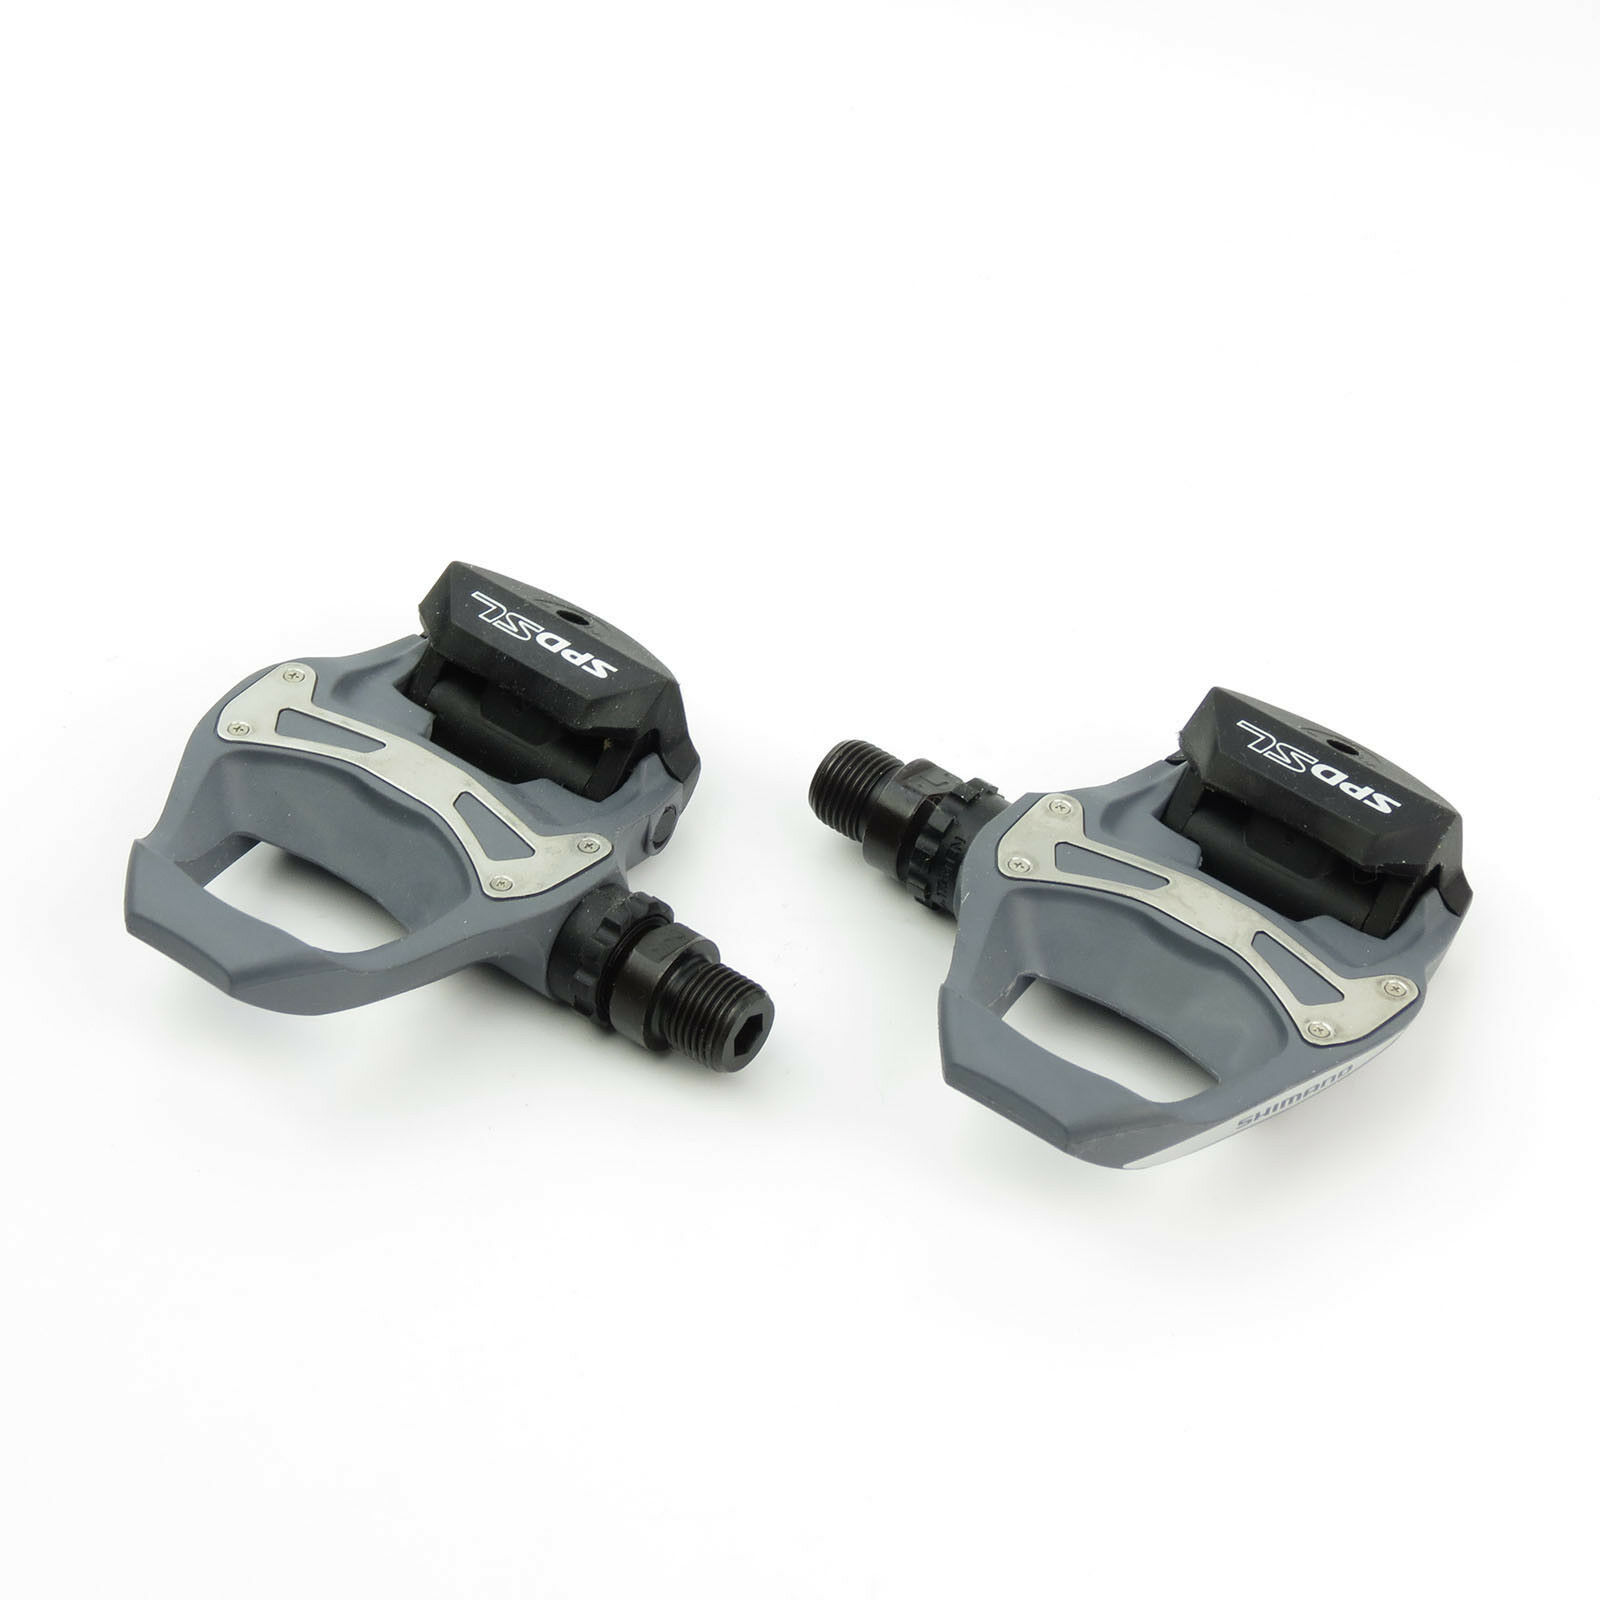 Shimano PD-R550 SPD-SL Road Bike Bicycle Pedals + SM-SH11 Cleats - Grau